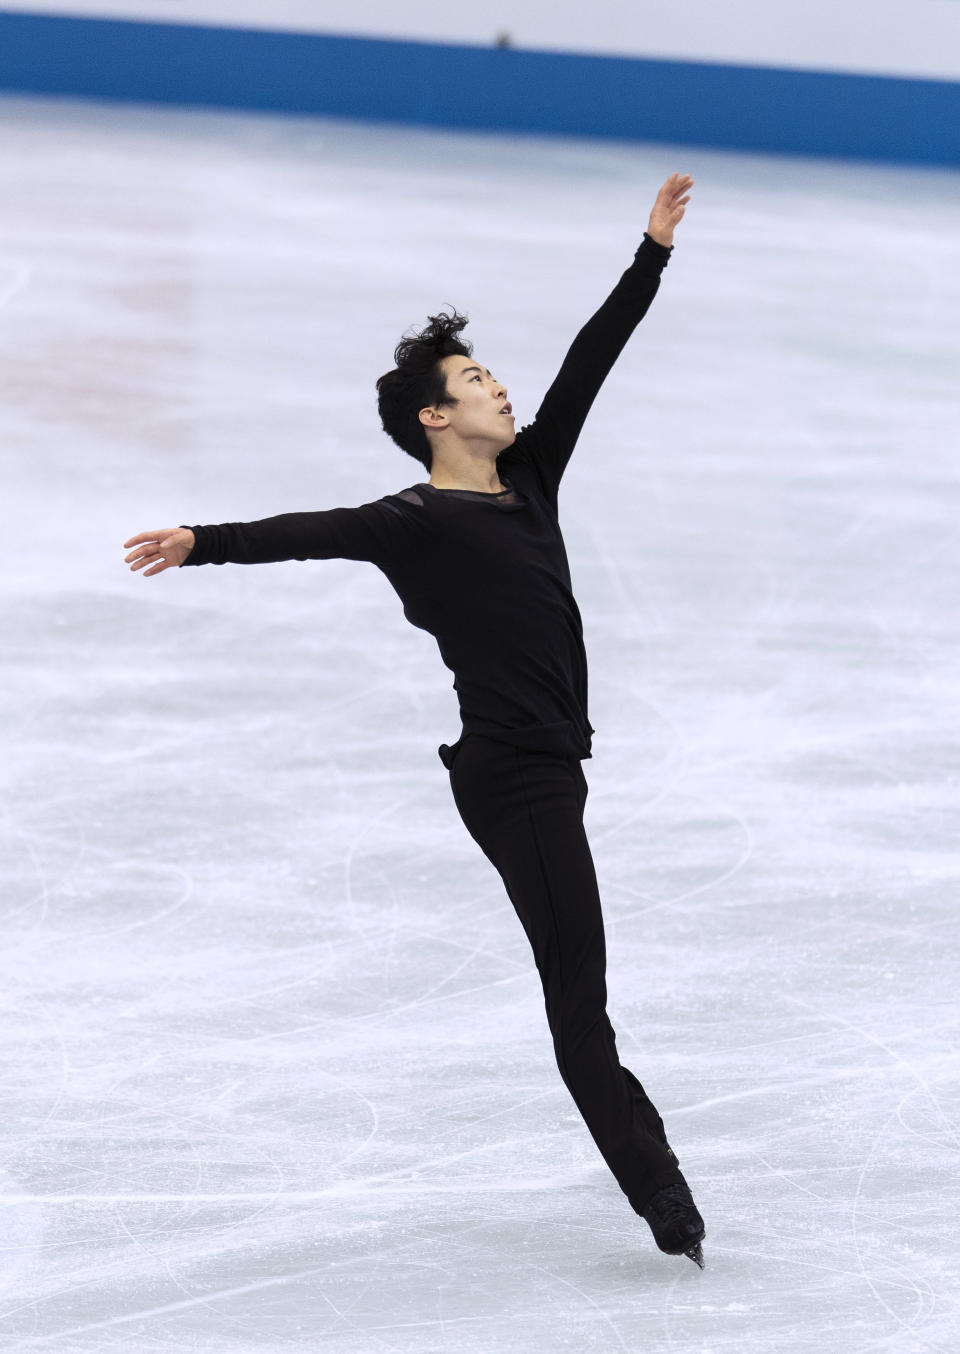 USA's Nathan Chen performs during the men's free skating program of the ISU World Team Trophy figure skating competition in Osaka, western Japan, Friday, April 16, 2021. (AP Photo/Hiro Komae)